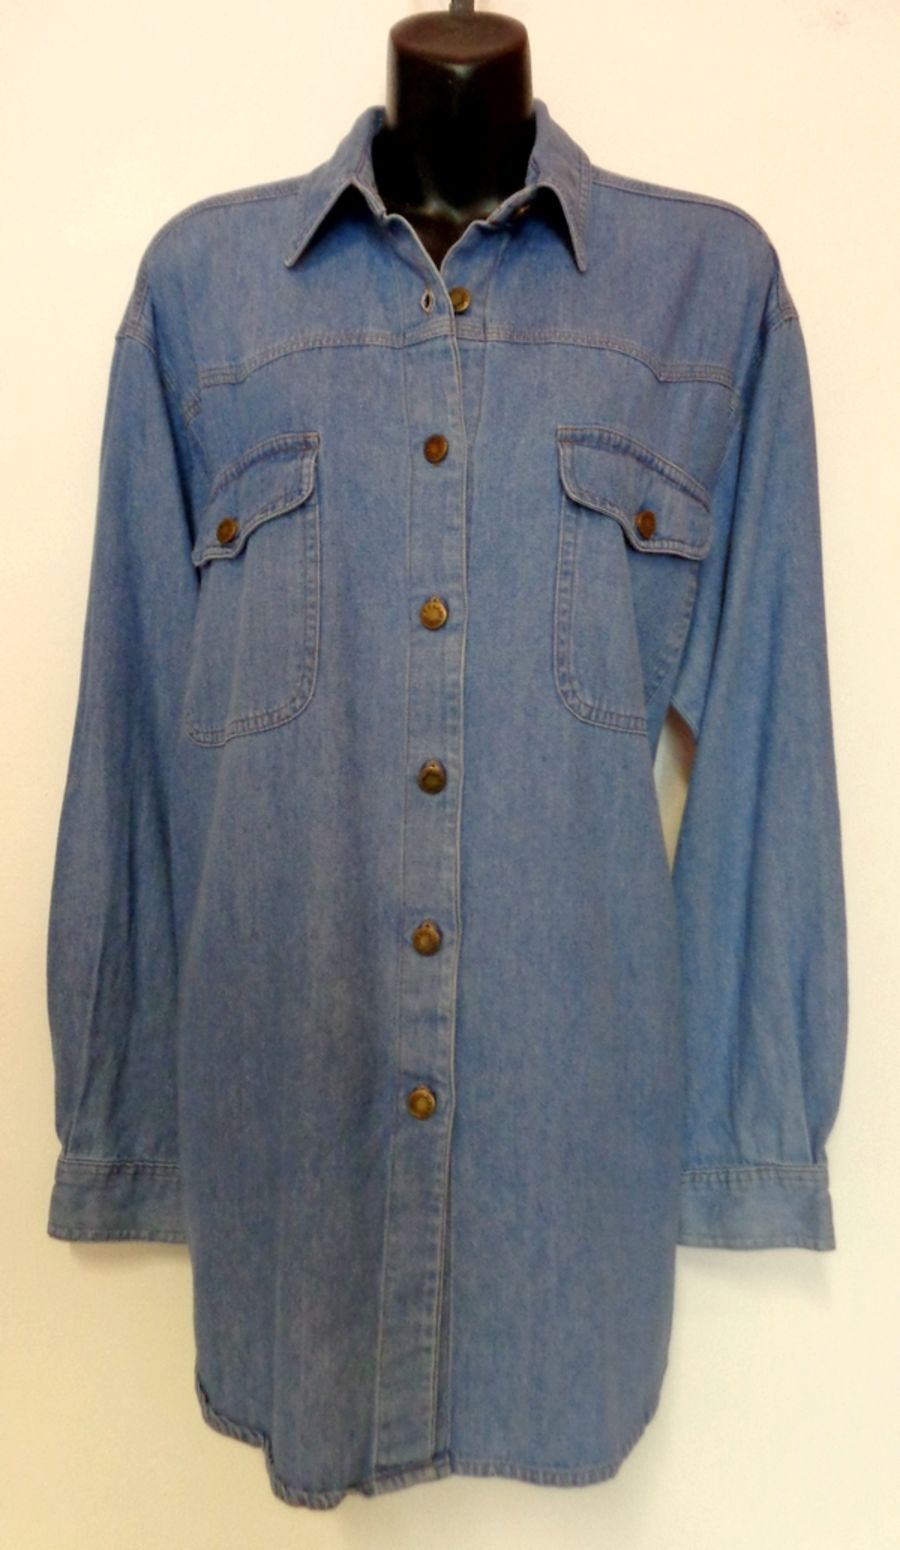 Vintage 1990's Blue Denim Shirt with Brass Button Poppers